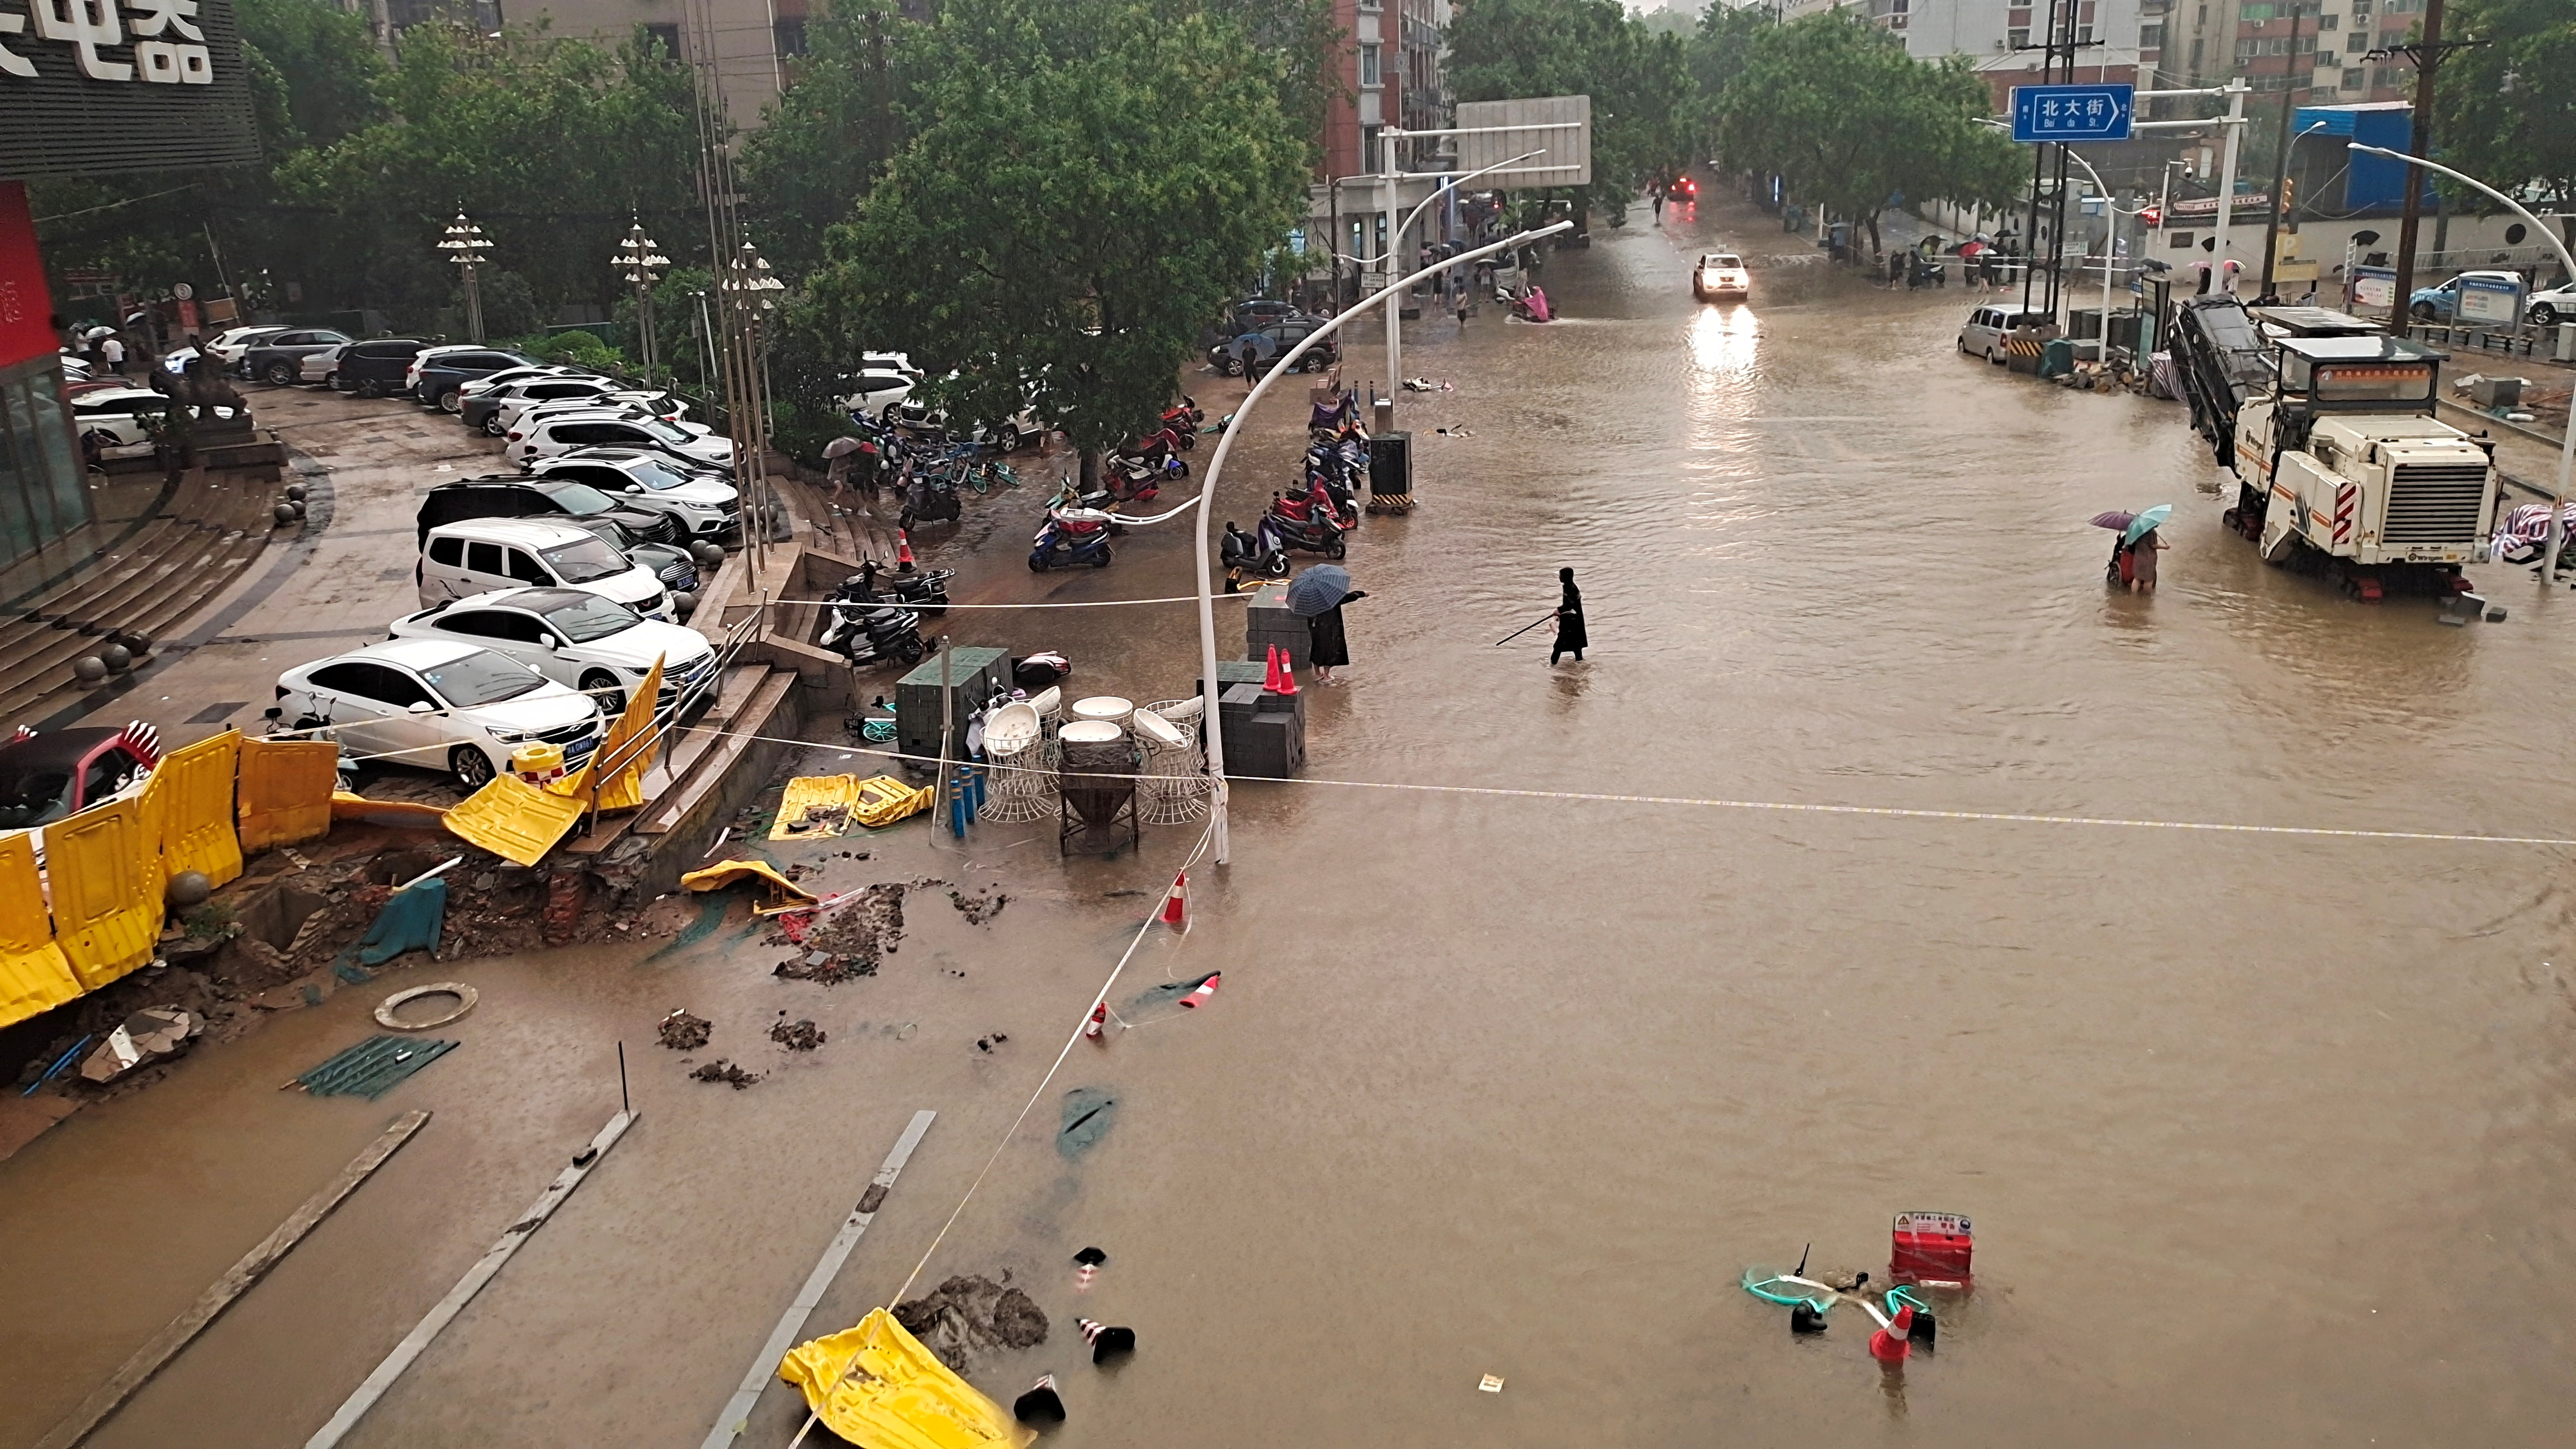 People wade through floodwaters on a road amid heavy rainfall in Zhengzhou, Henan province, China July 20, 2021. Picture taken July 20, 2021. China Daily via REUTERS  ATTENTION EDITORS - THIS IMAGE WAS PROVIDED BY A THIRD PARTY. CHINA OUT.